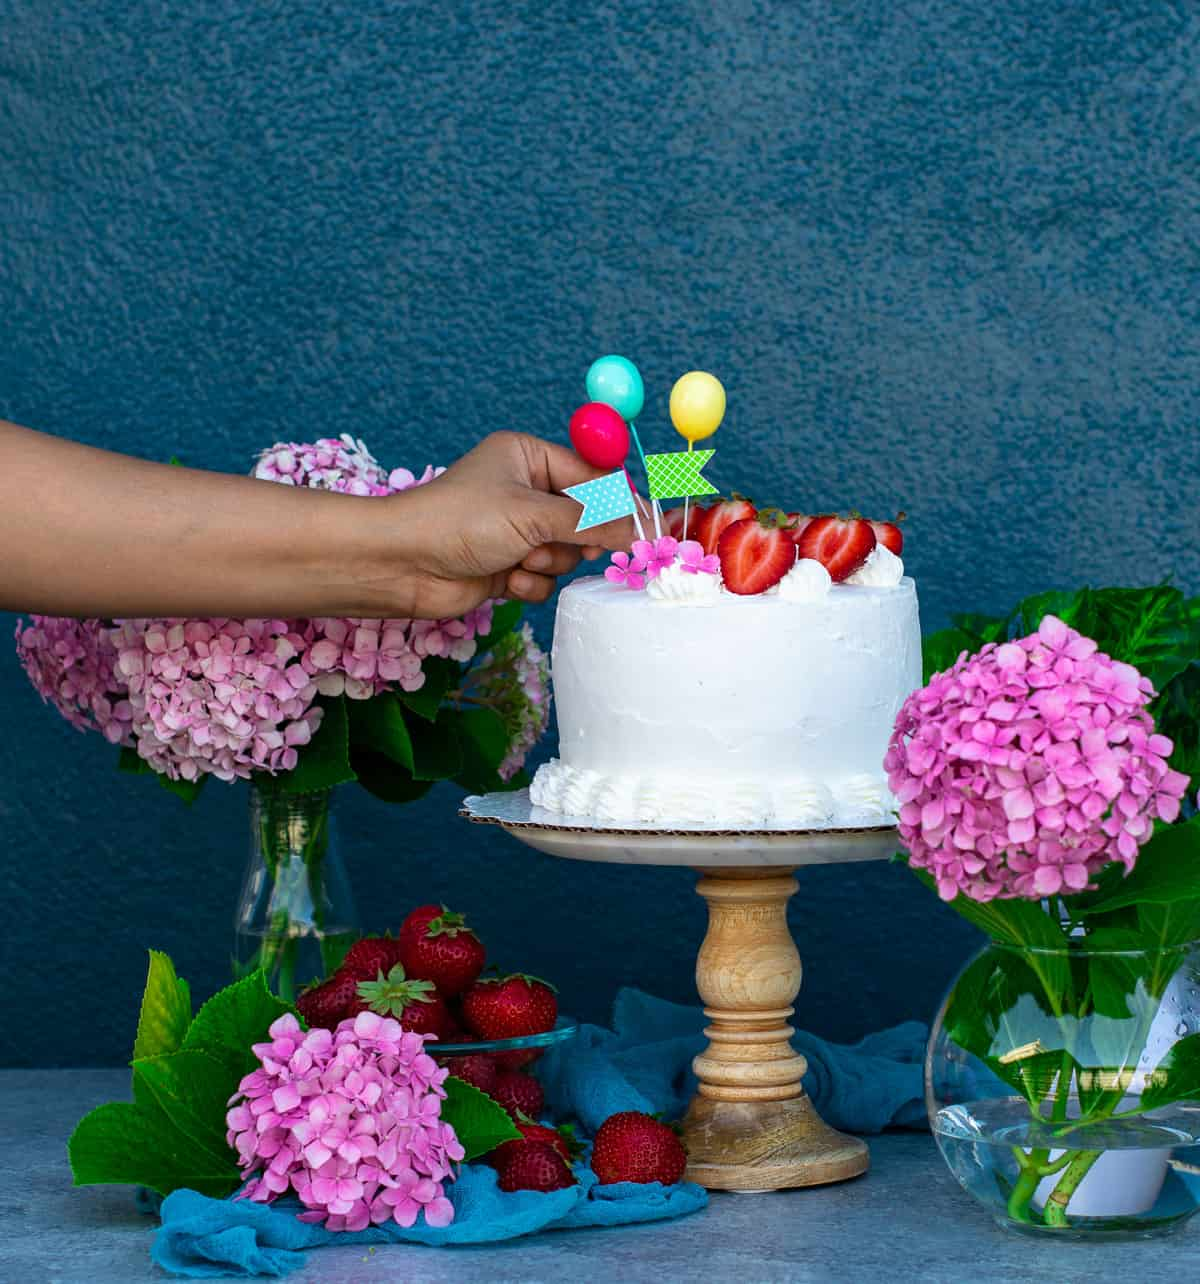 Placing balloon toppers on the cake